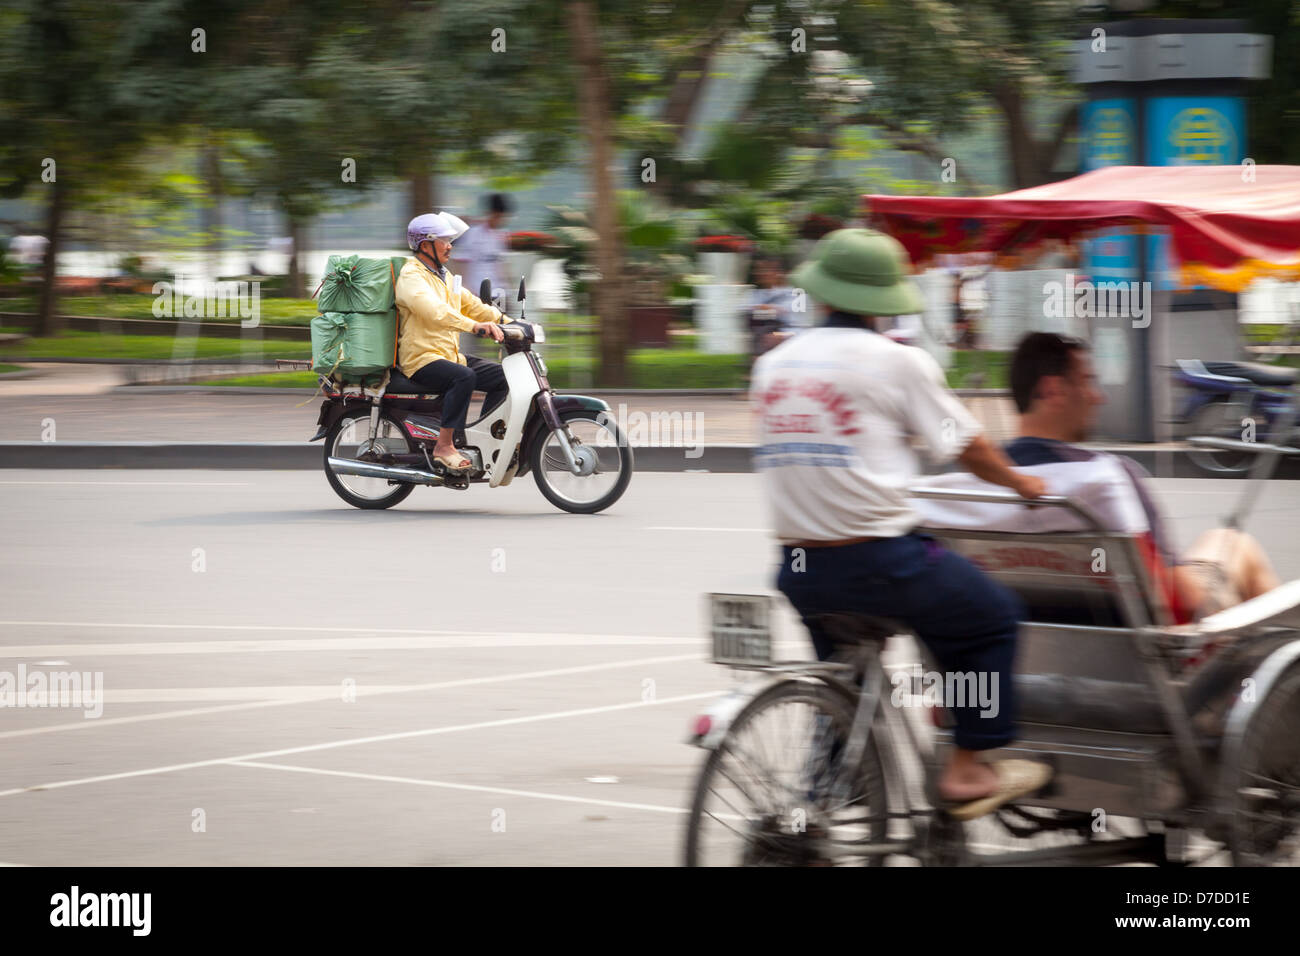 A man on his scooter driving past Hoam Kiem Lake and a Rickshaw in Hanoi, Vietnam - Stock Image